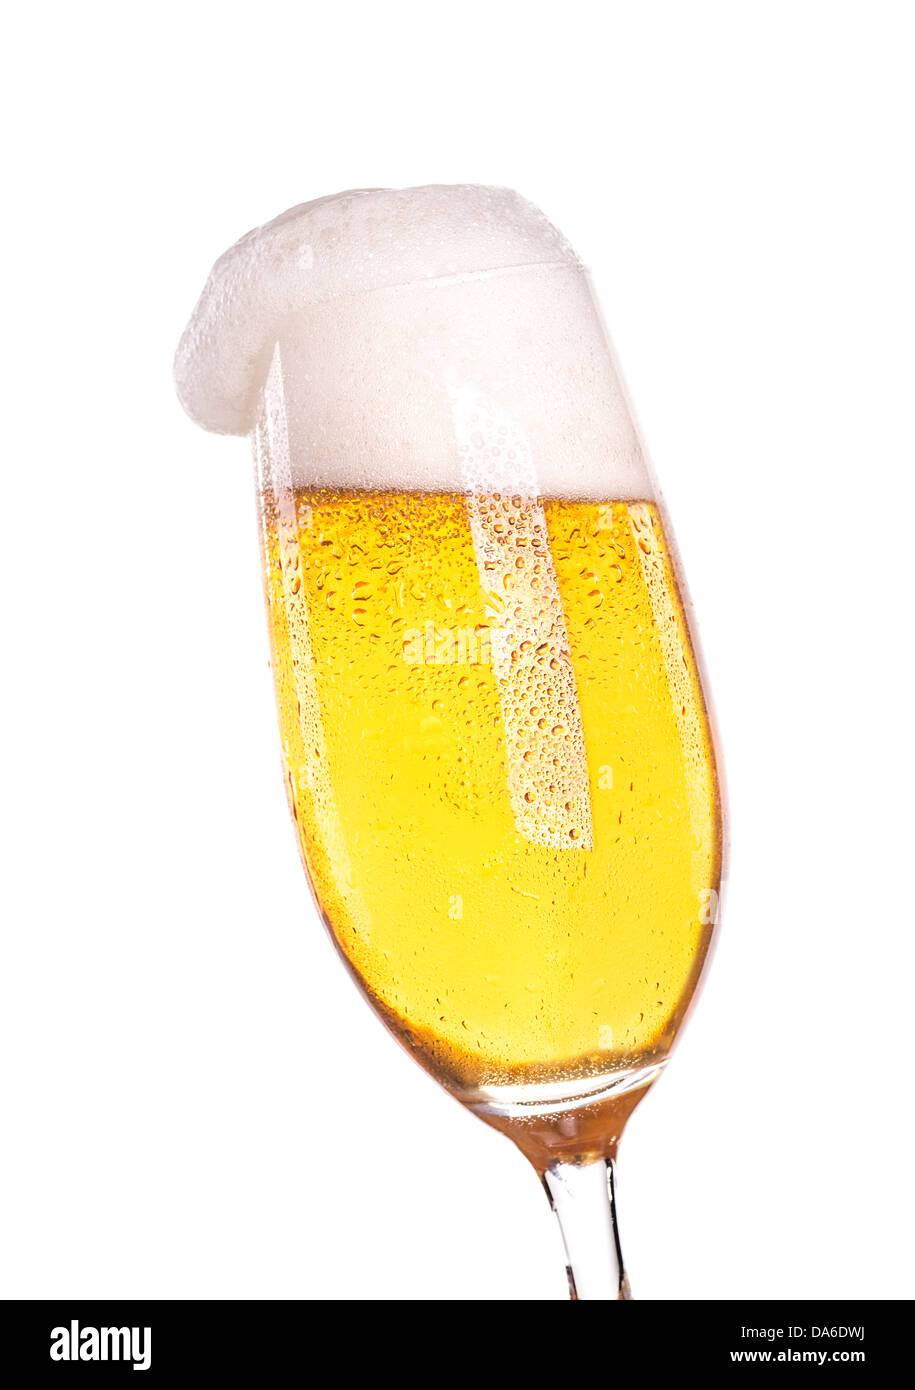 an isolated glass with a cool beer anda nice head of foam stock